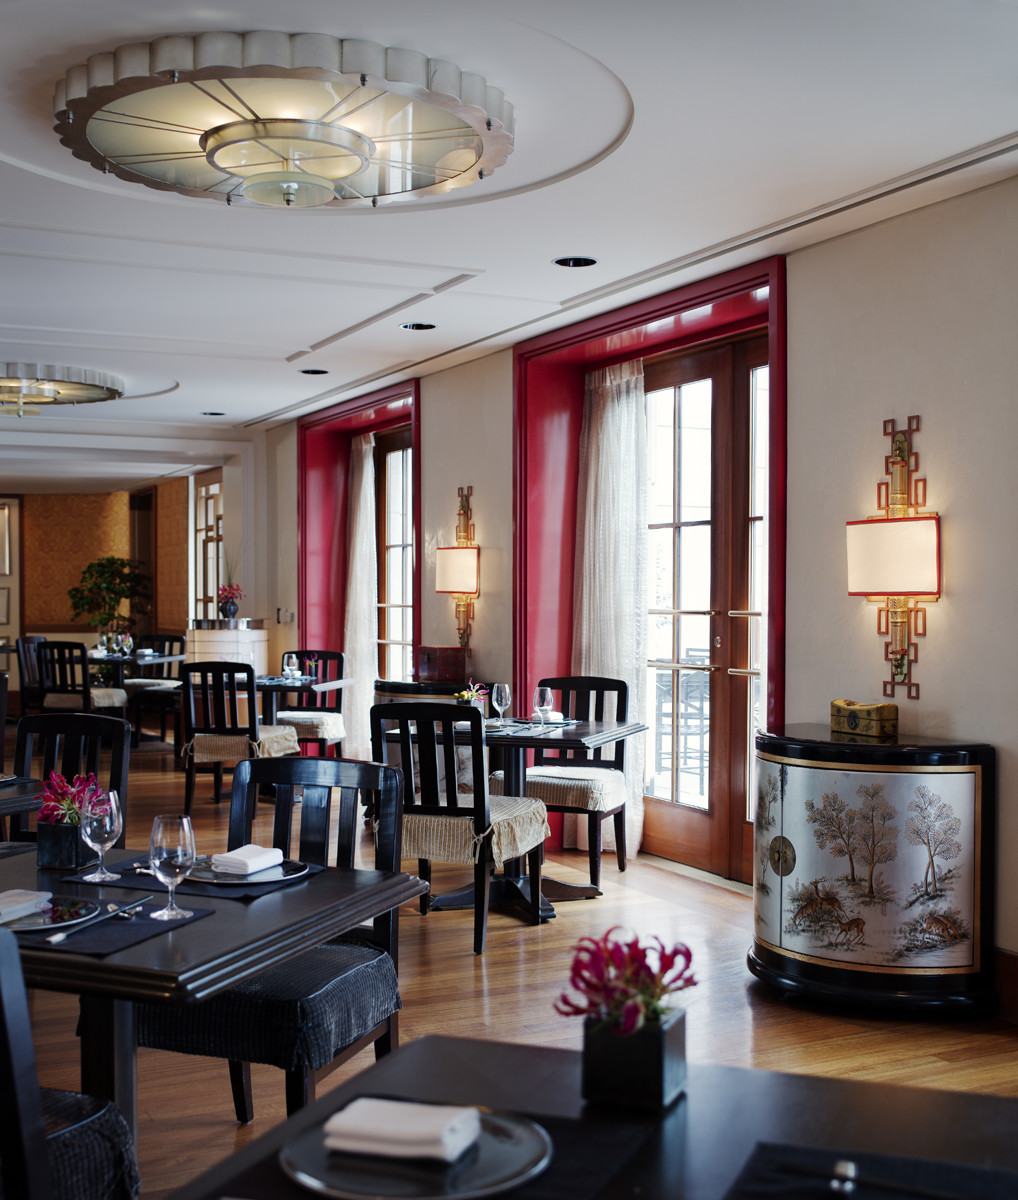 Shanghai terrace restaurant information and reviews on for Table 52 chicago dress code